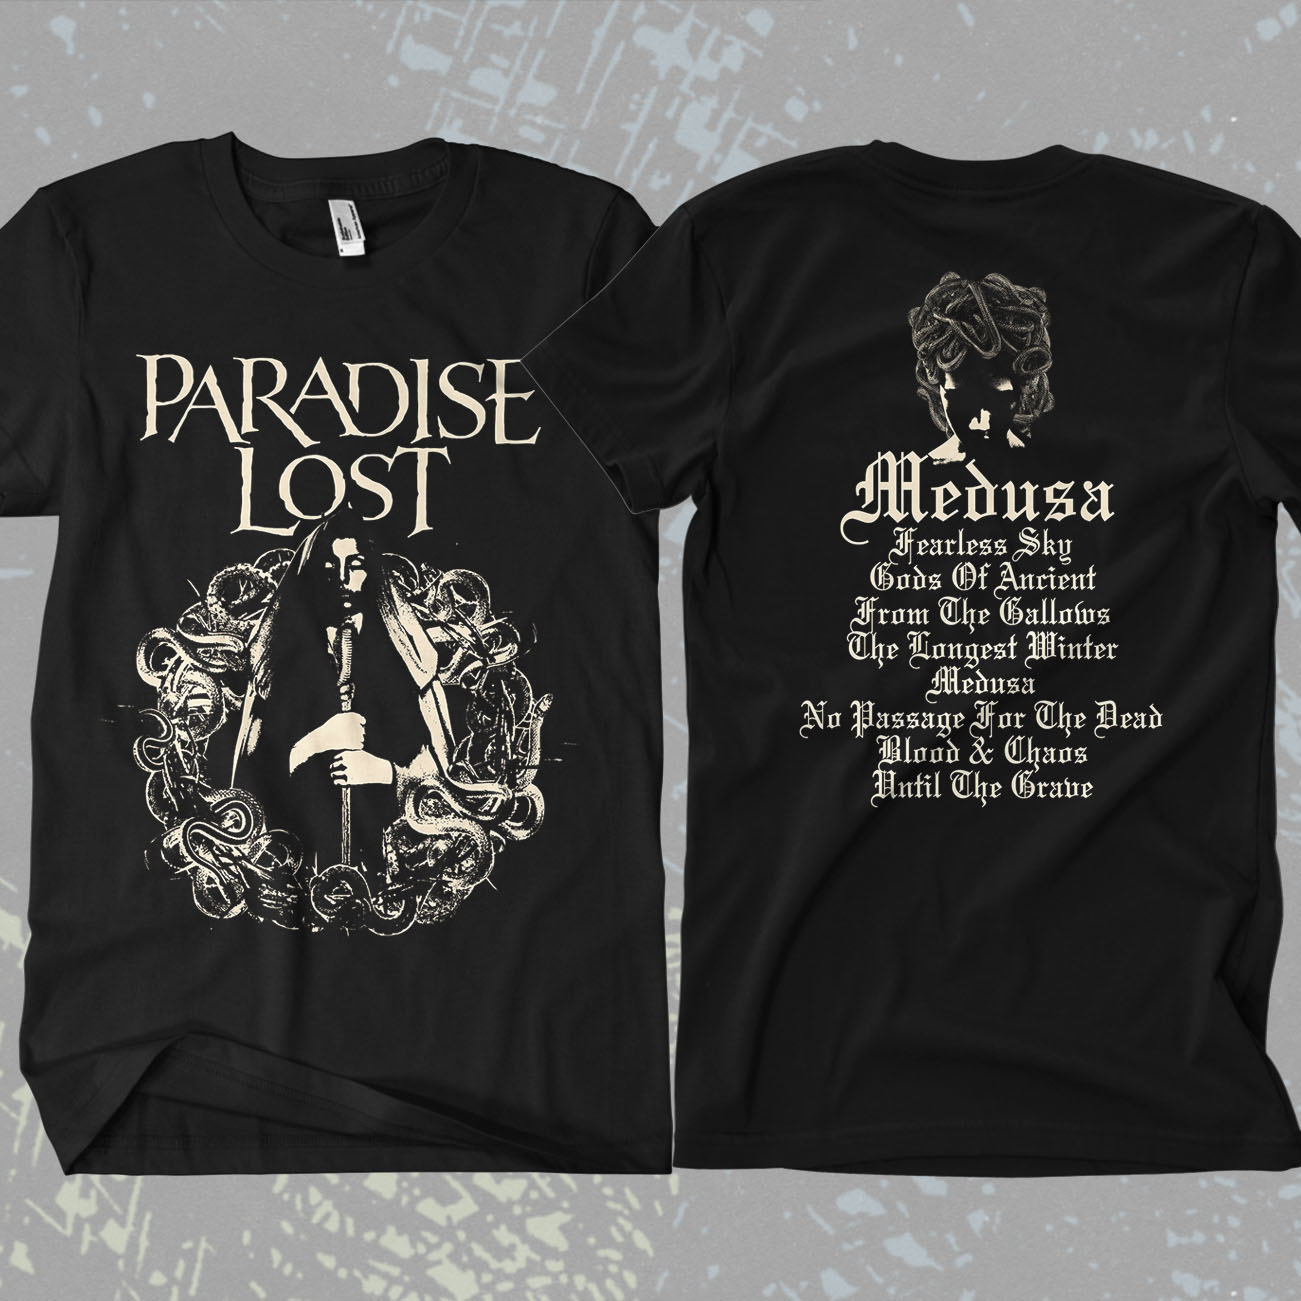 Paradise Lost - 'Tracks' T-Shirt - Paradise Lost